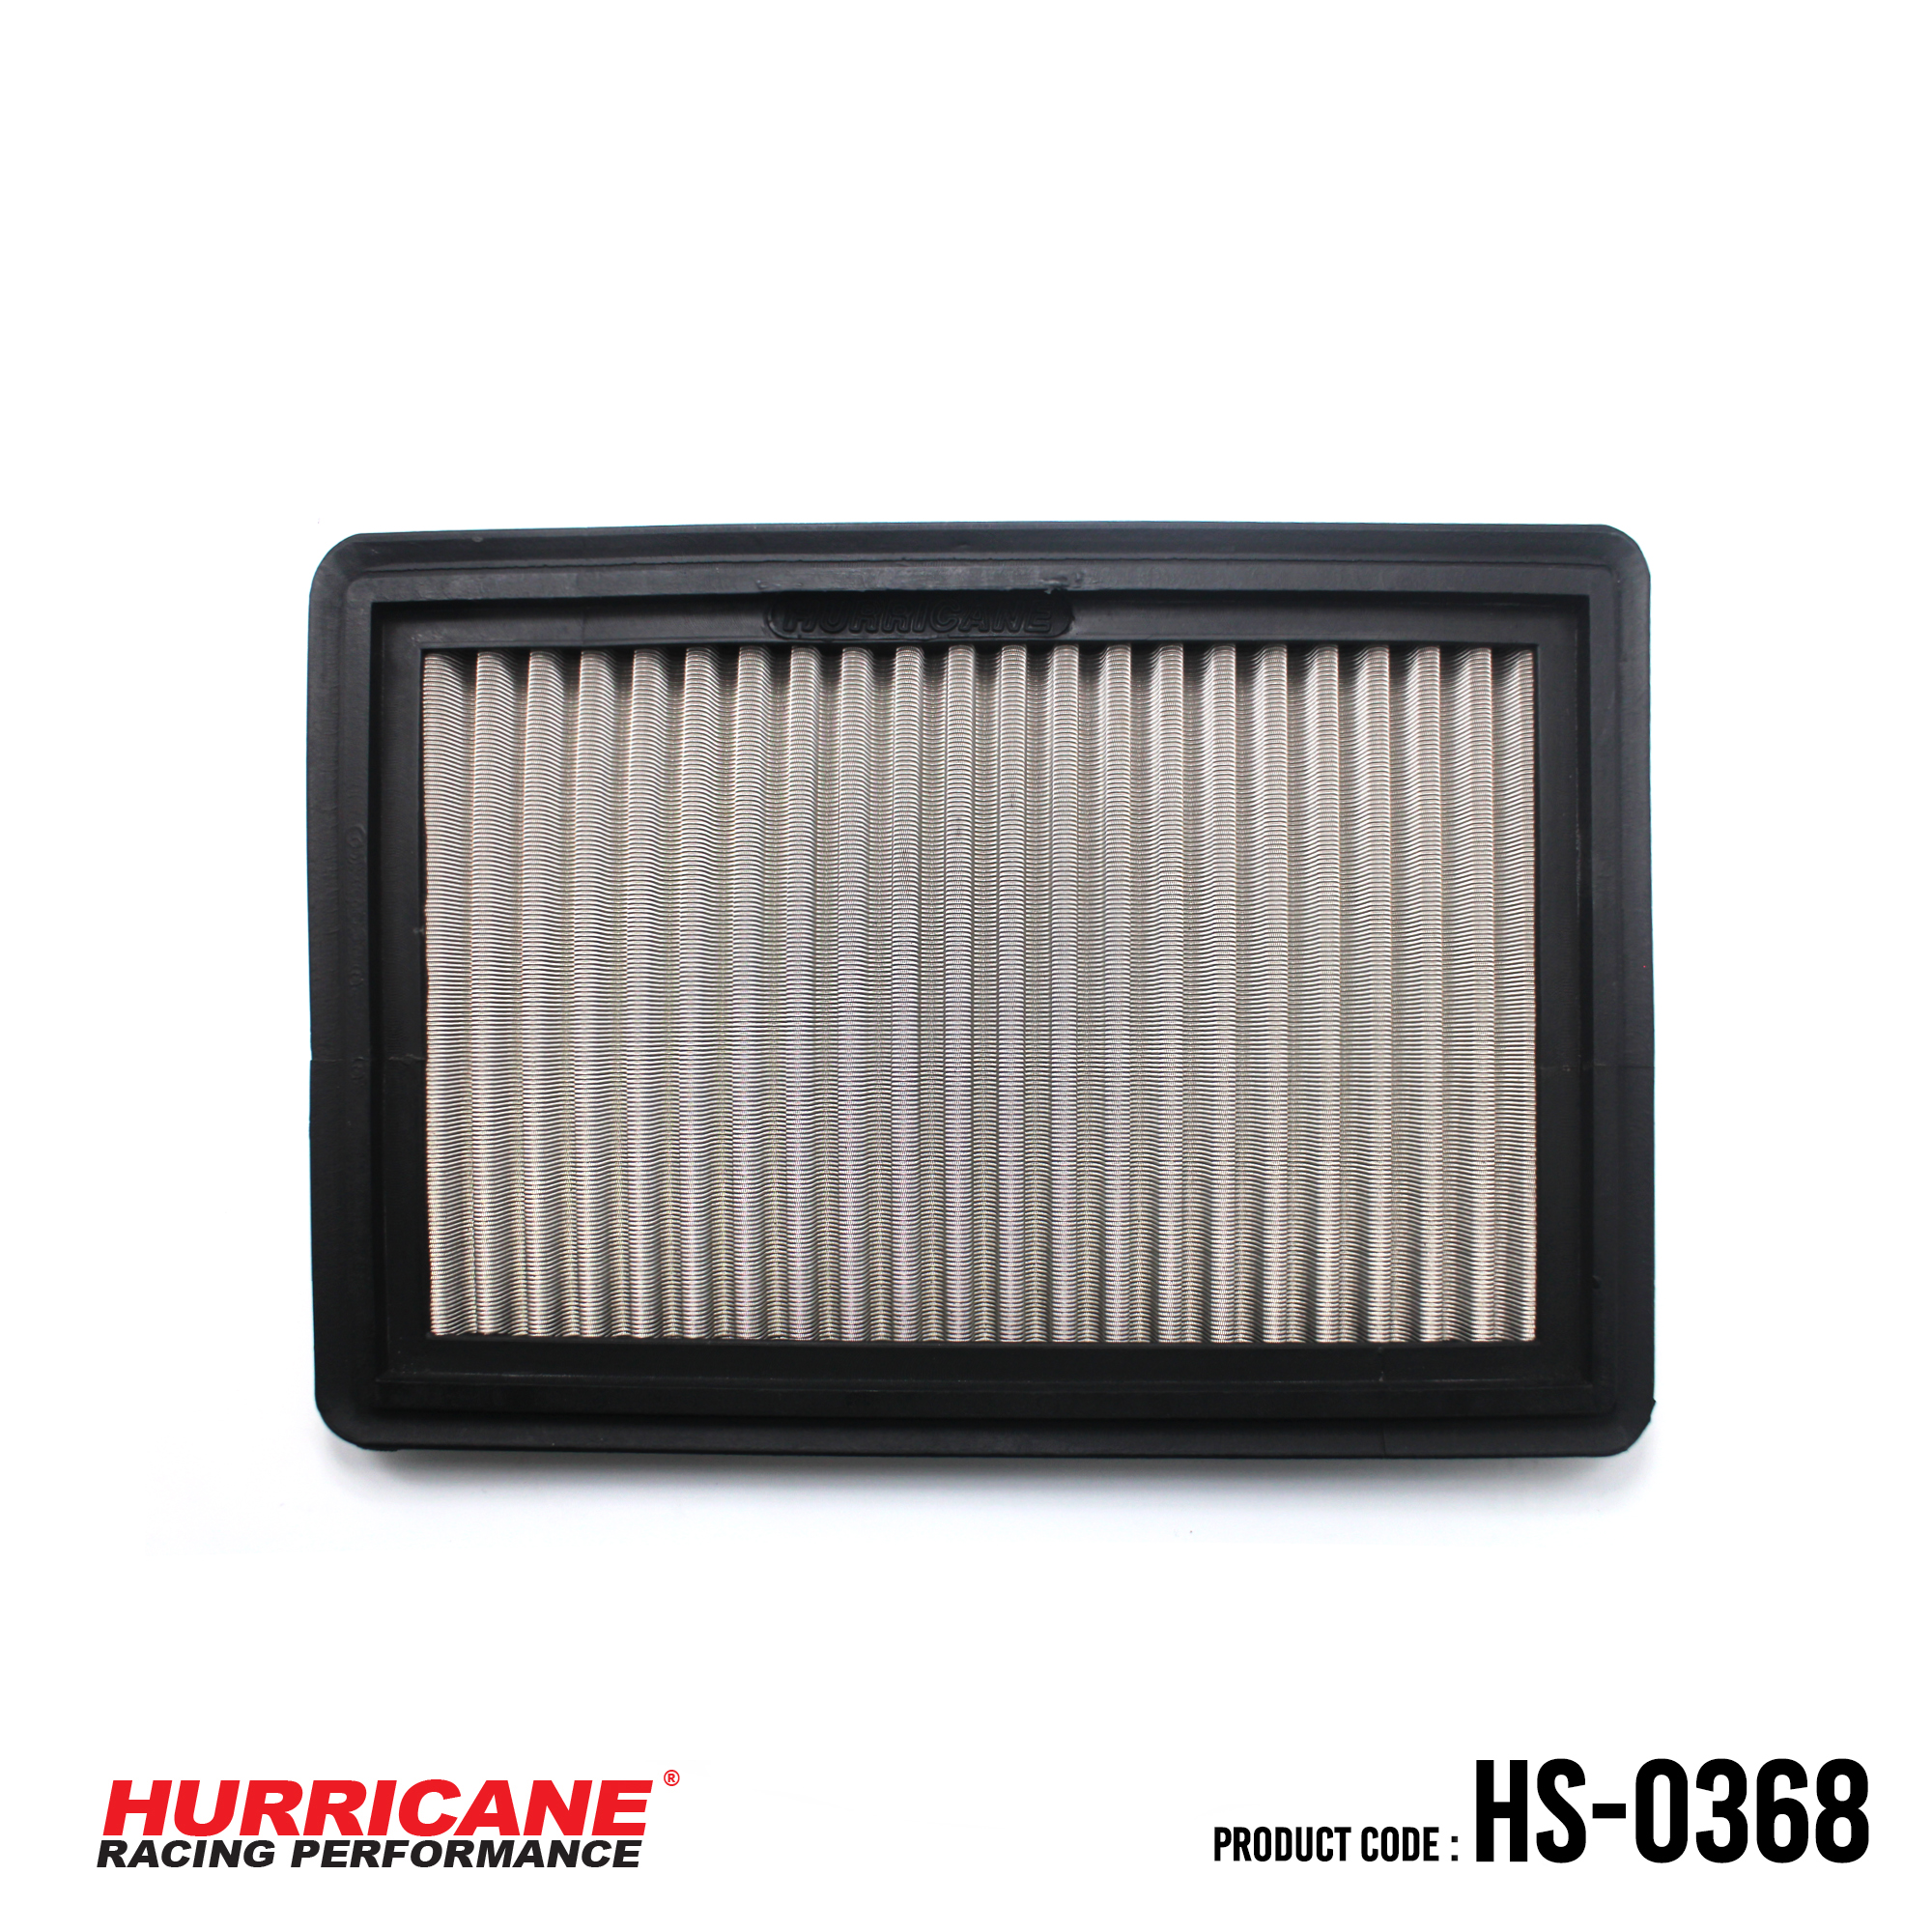 HURRICANE STAINLESS STEEL AIR FILTER FOR HS-0368Nissan